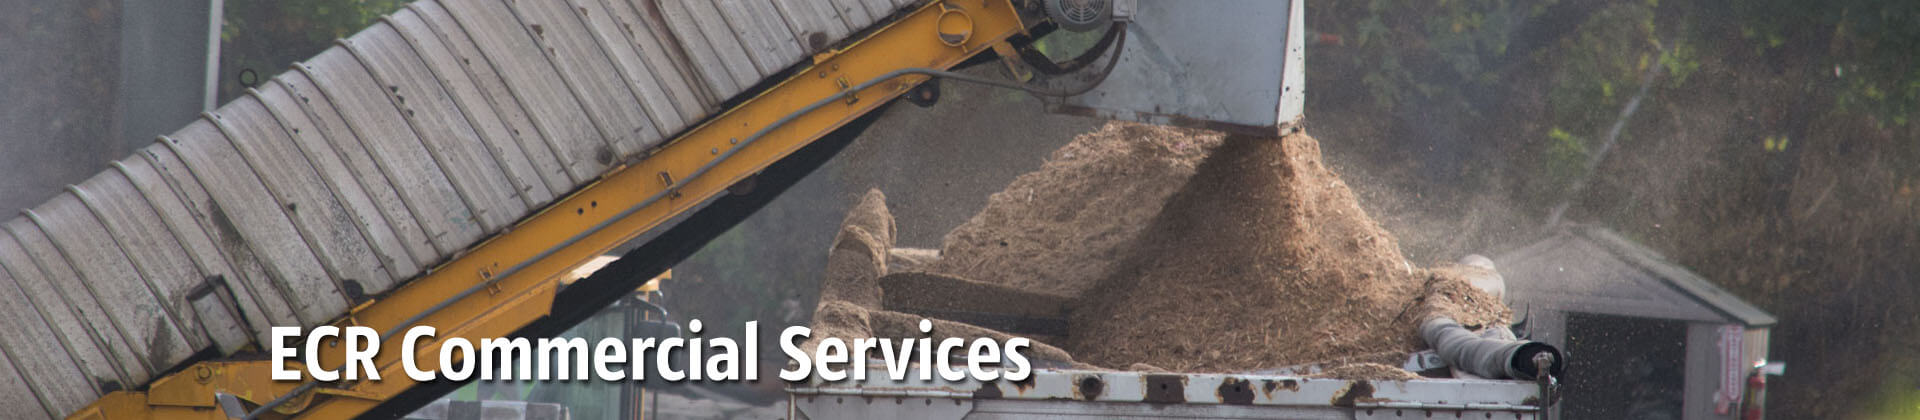 ECR Commercial Services